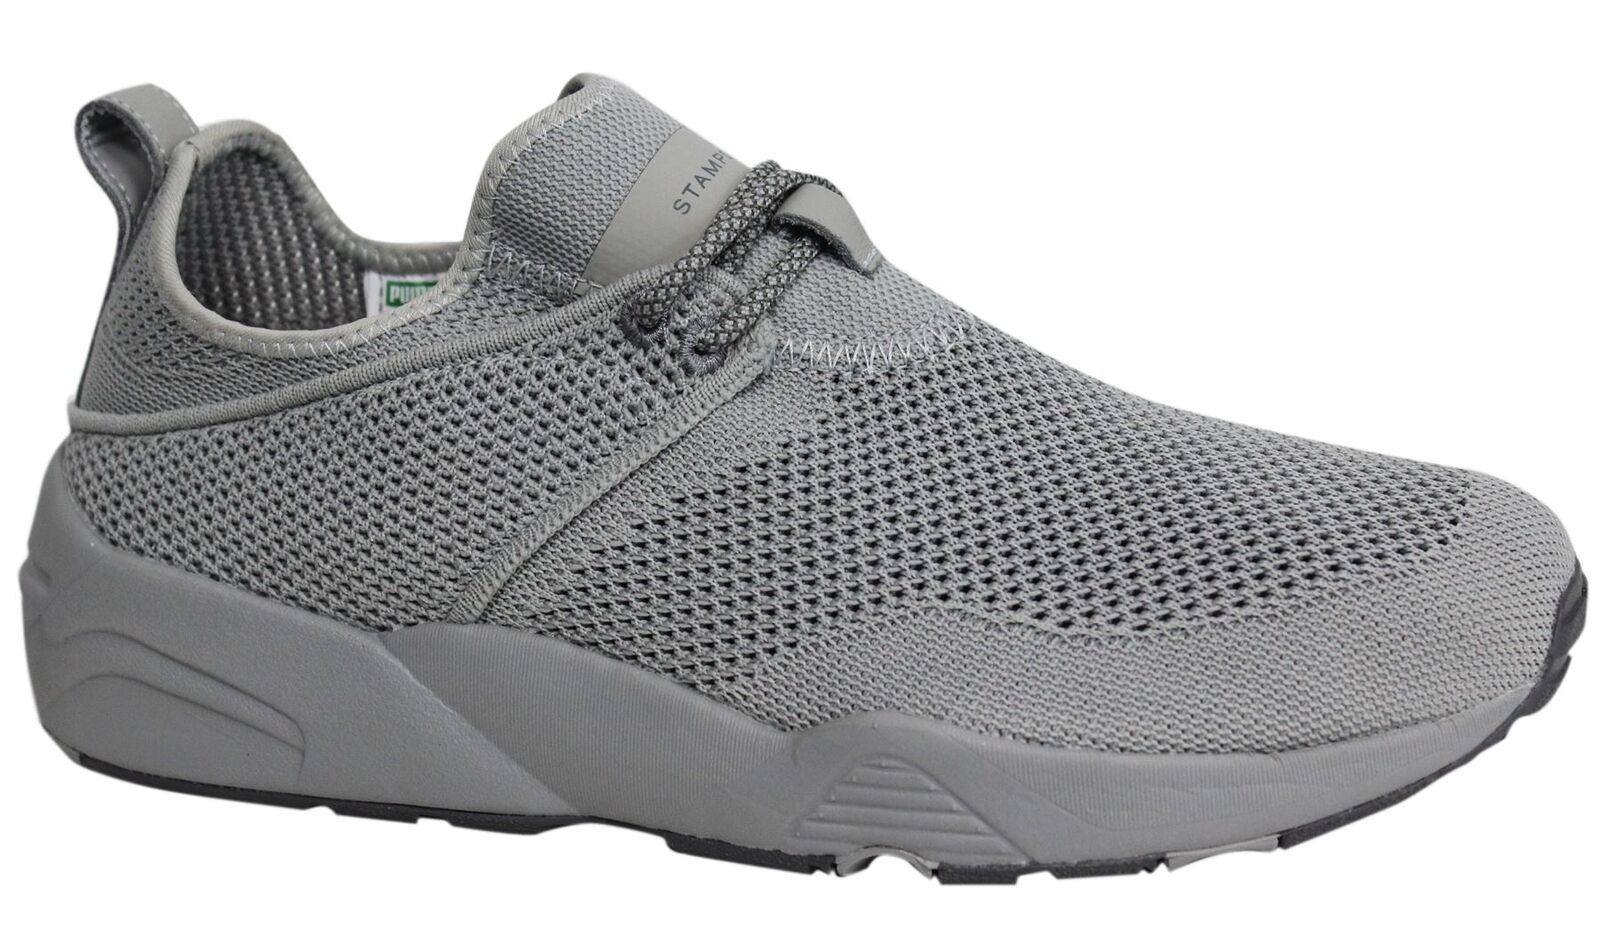 Puma x Stampd Trinomic Woven Steel Gris Homme Textile Trainers 362744 02 P4